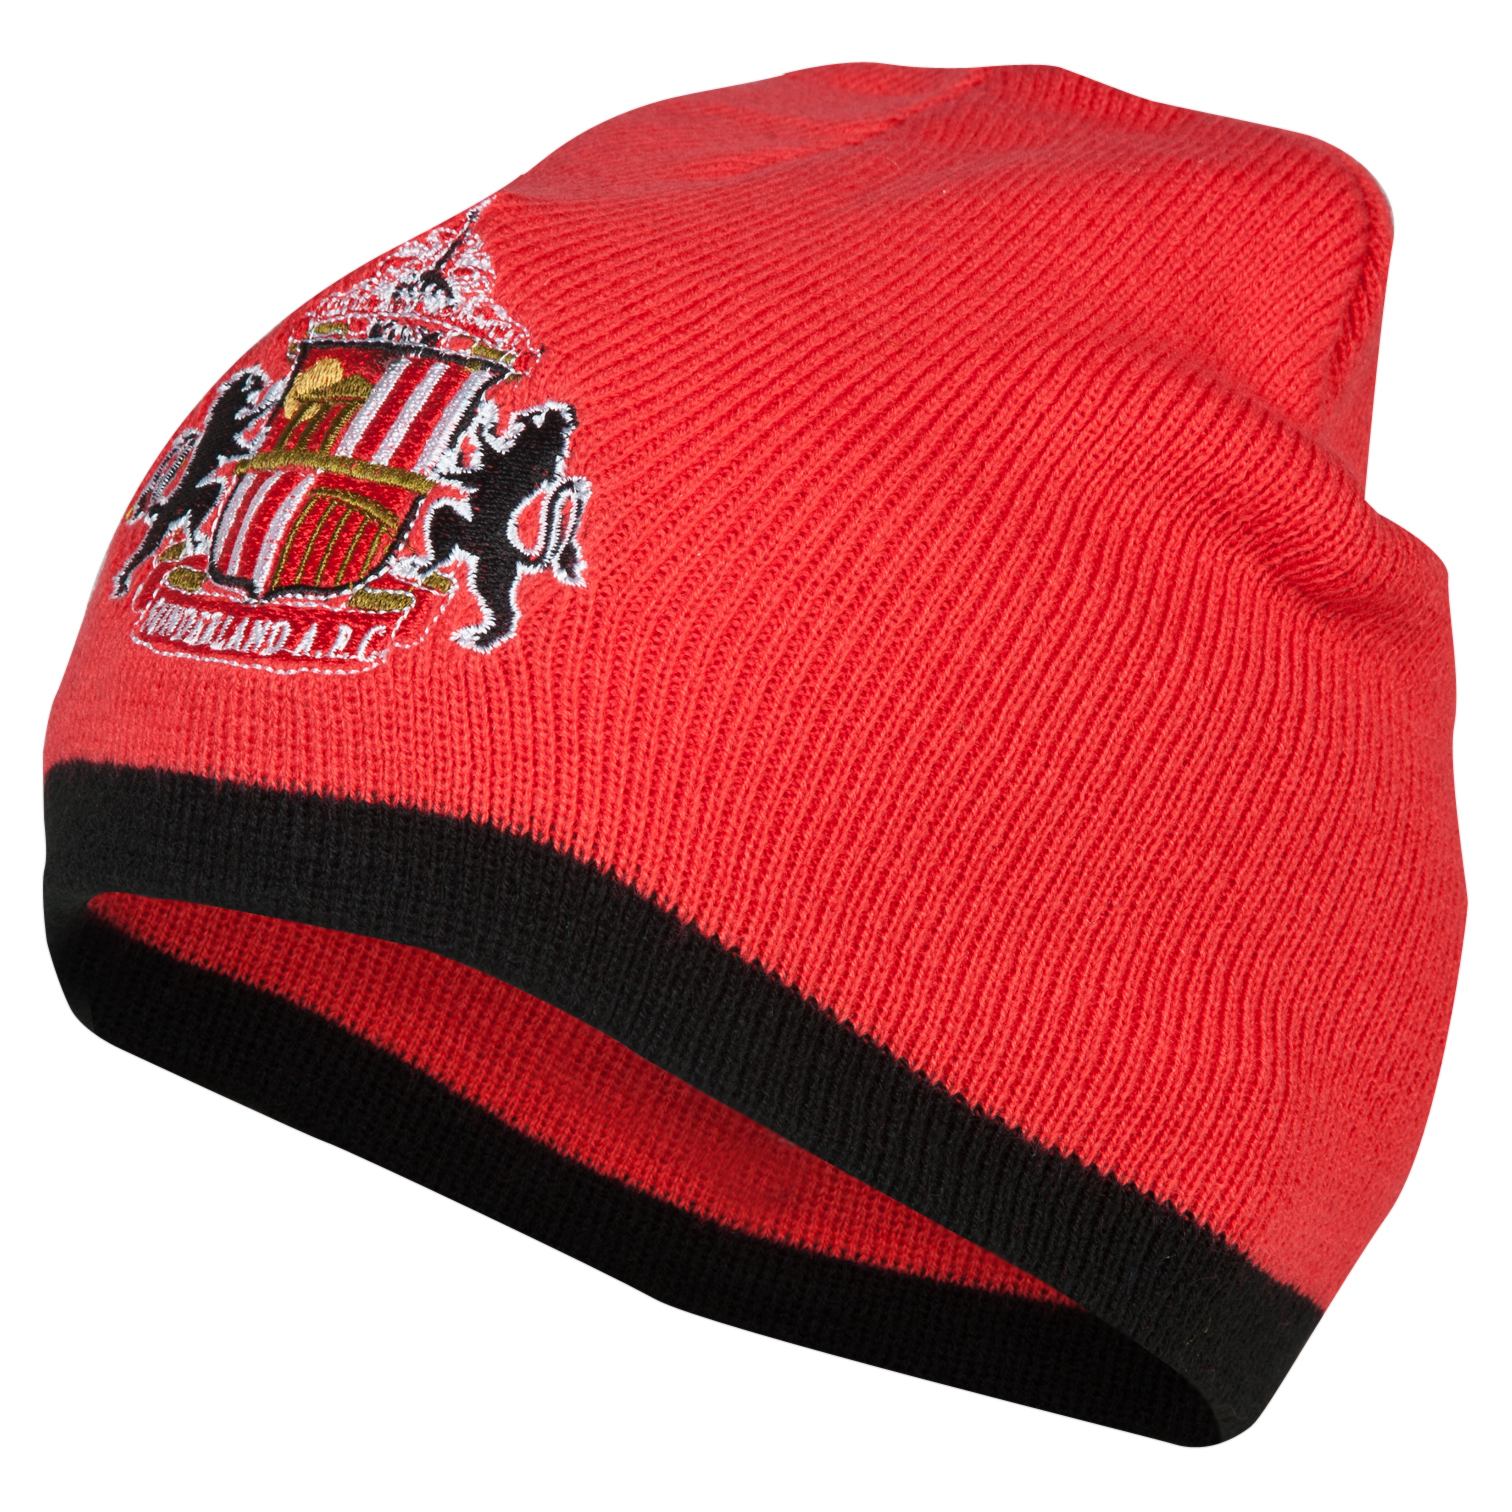 Sunderland Core Beanie Hat - Red